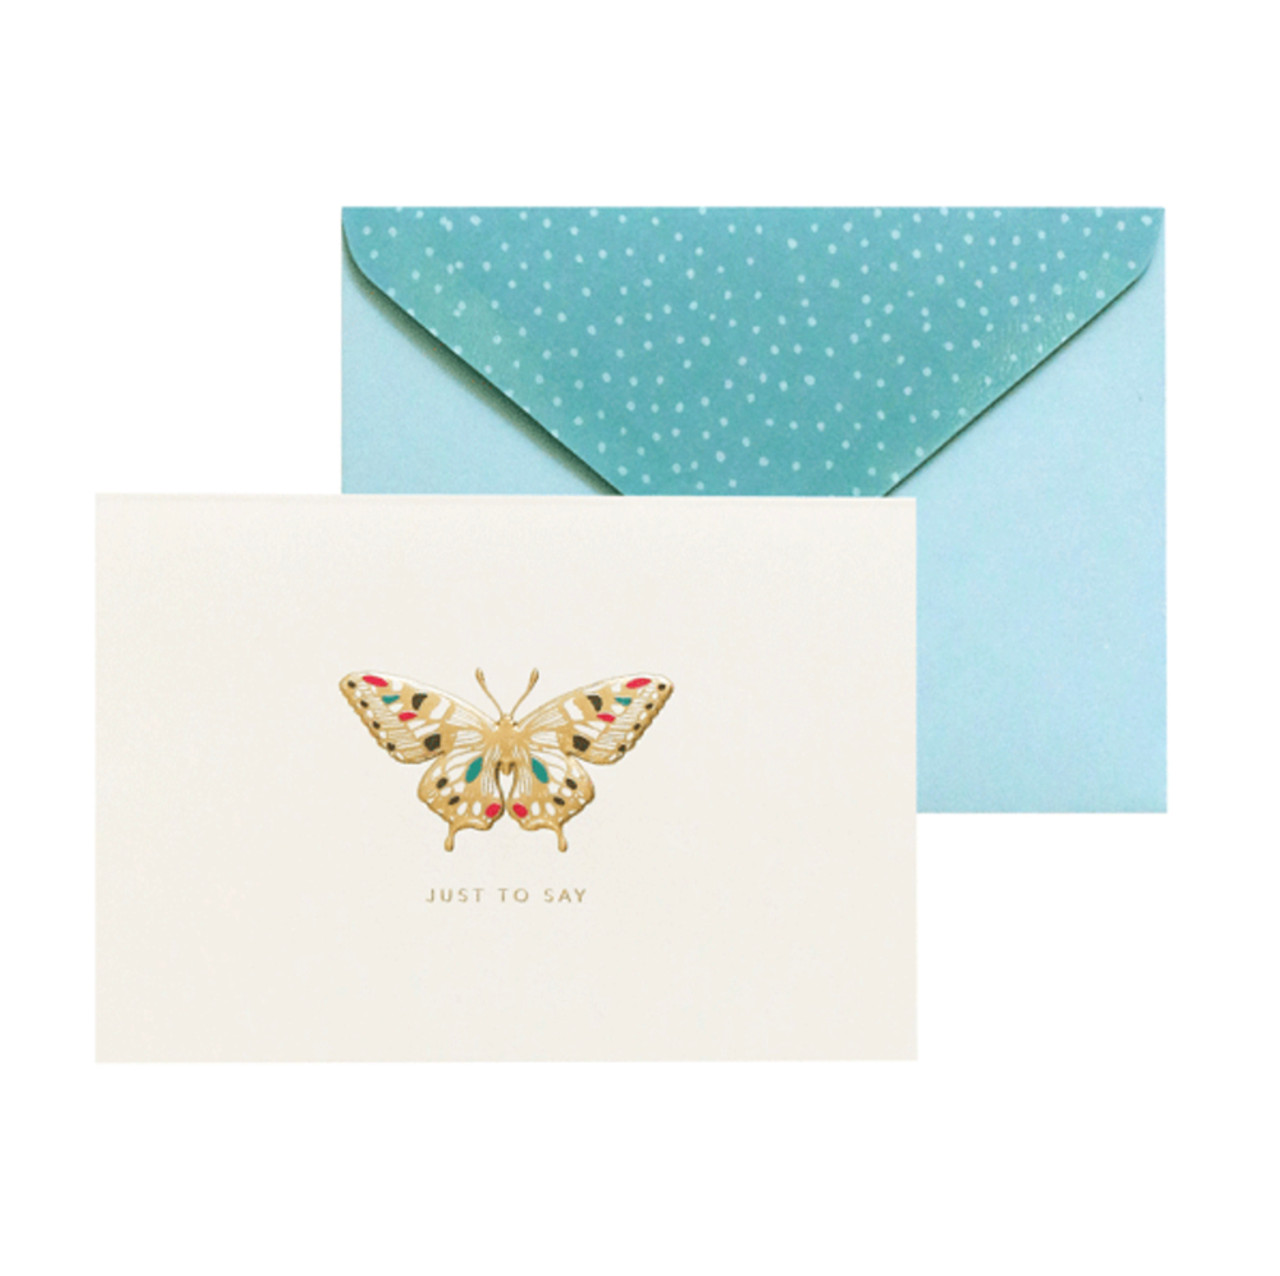 Portico Designs butterfly greetings card and envelope